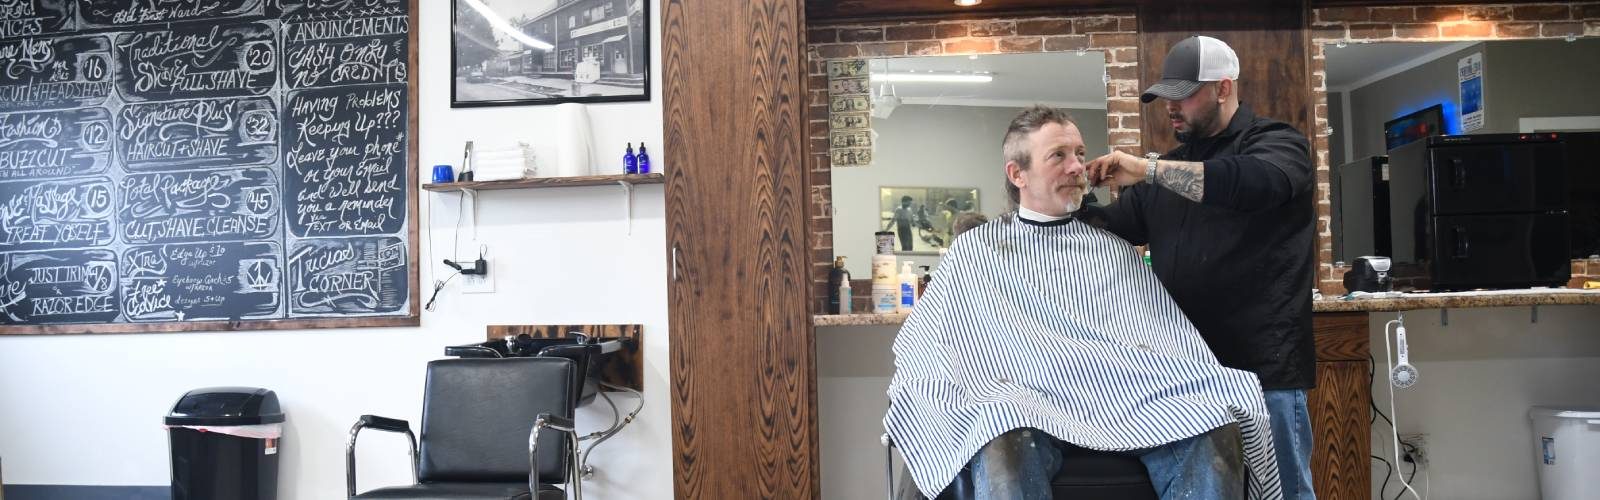 Rock Boyz Barbershop is full of neighborhood history, including old street signs and photographs from the Old First Ward. <span class='image-credits'>Jessica Brant</span>